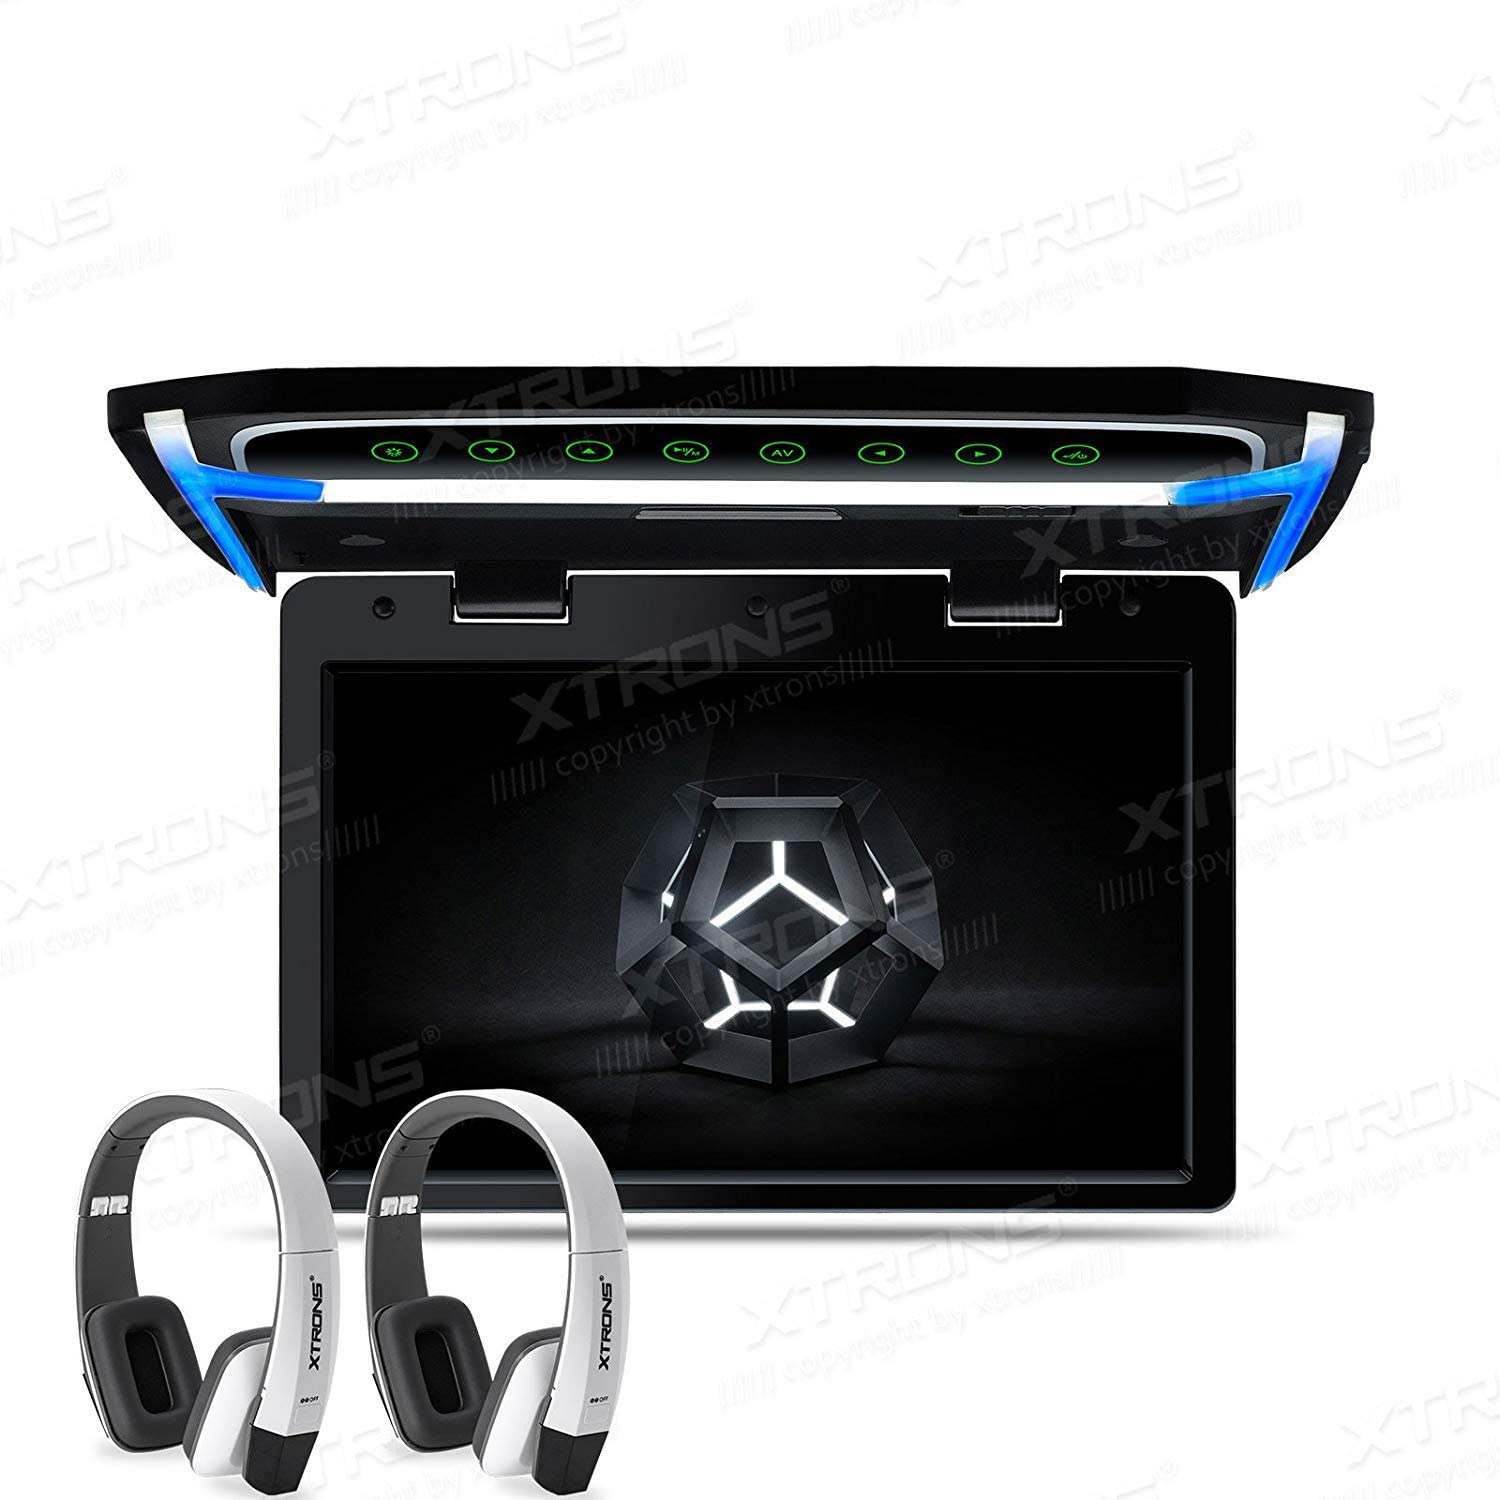 XTRONS 12.1 Inch 1080P Video Car Overhead Player Roof Mounted Monitor HDMI Port White New Version IR Headphones